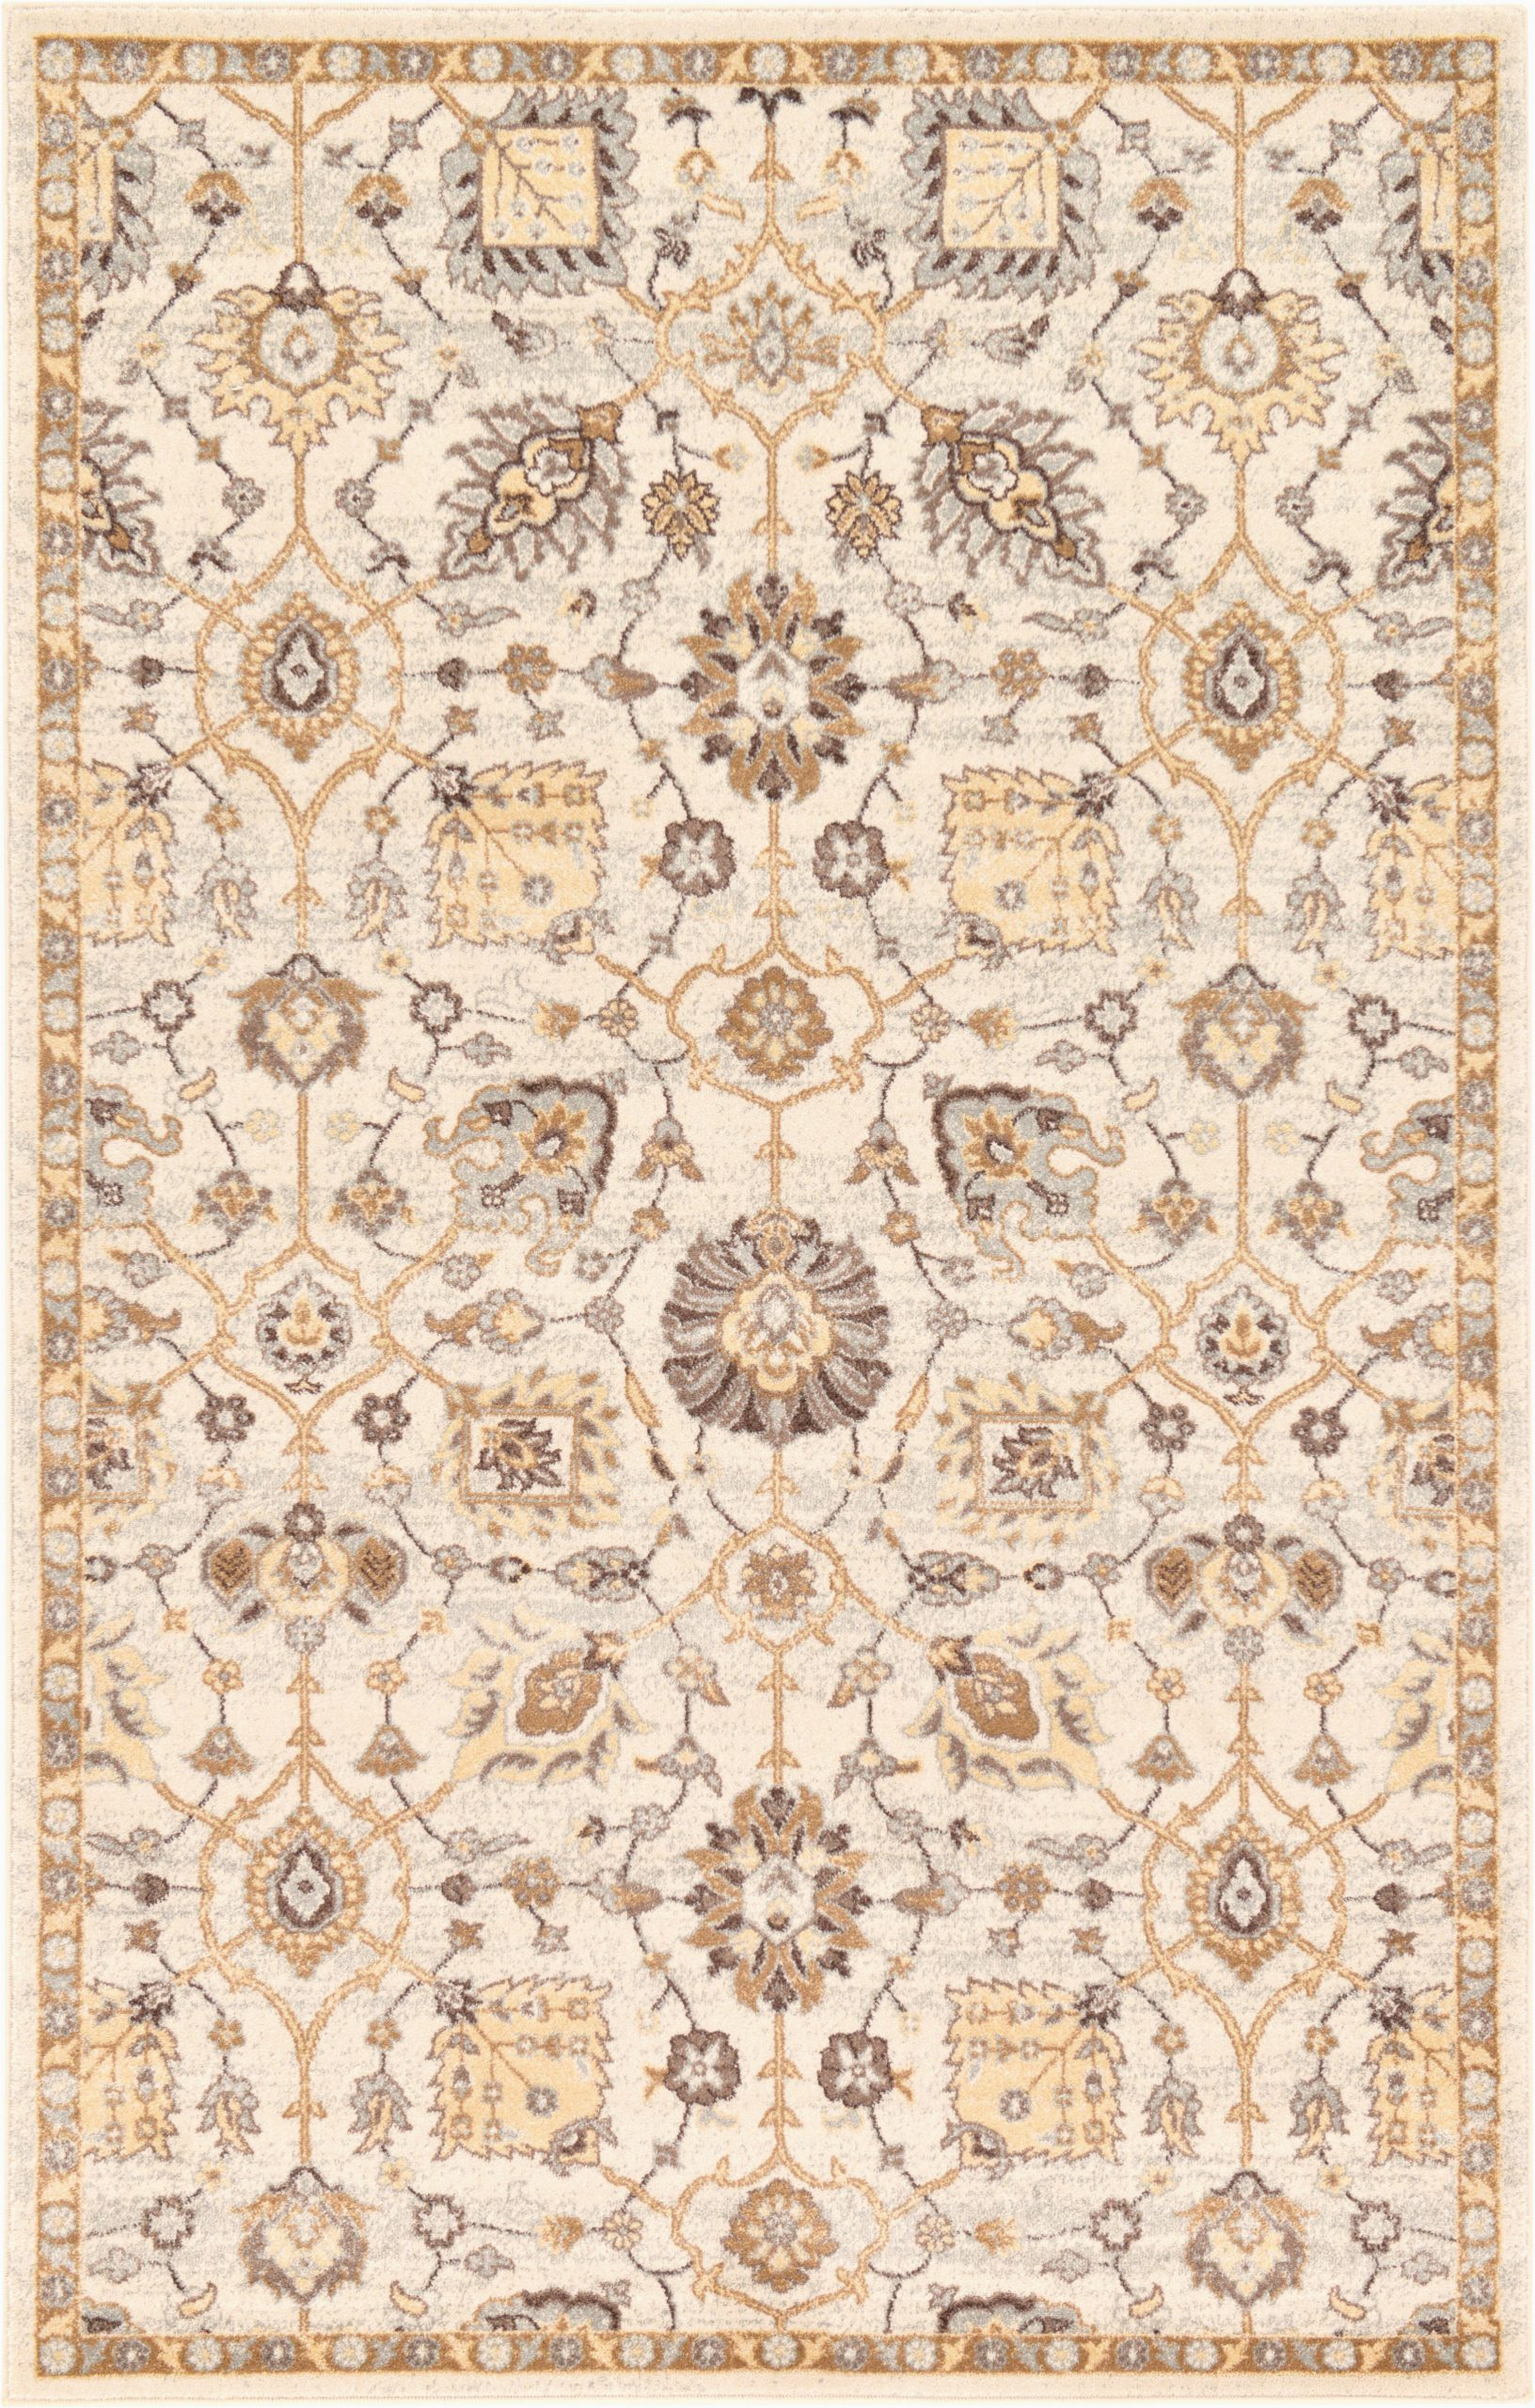 Gaines Hand Woven Natural area Rug by Charlton Home Fulmore area Rug